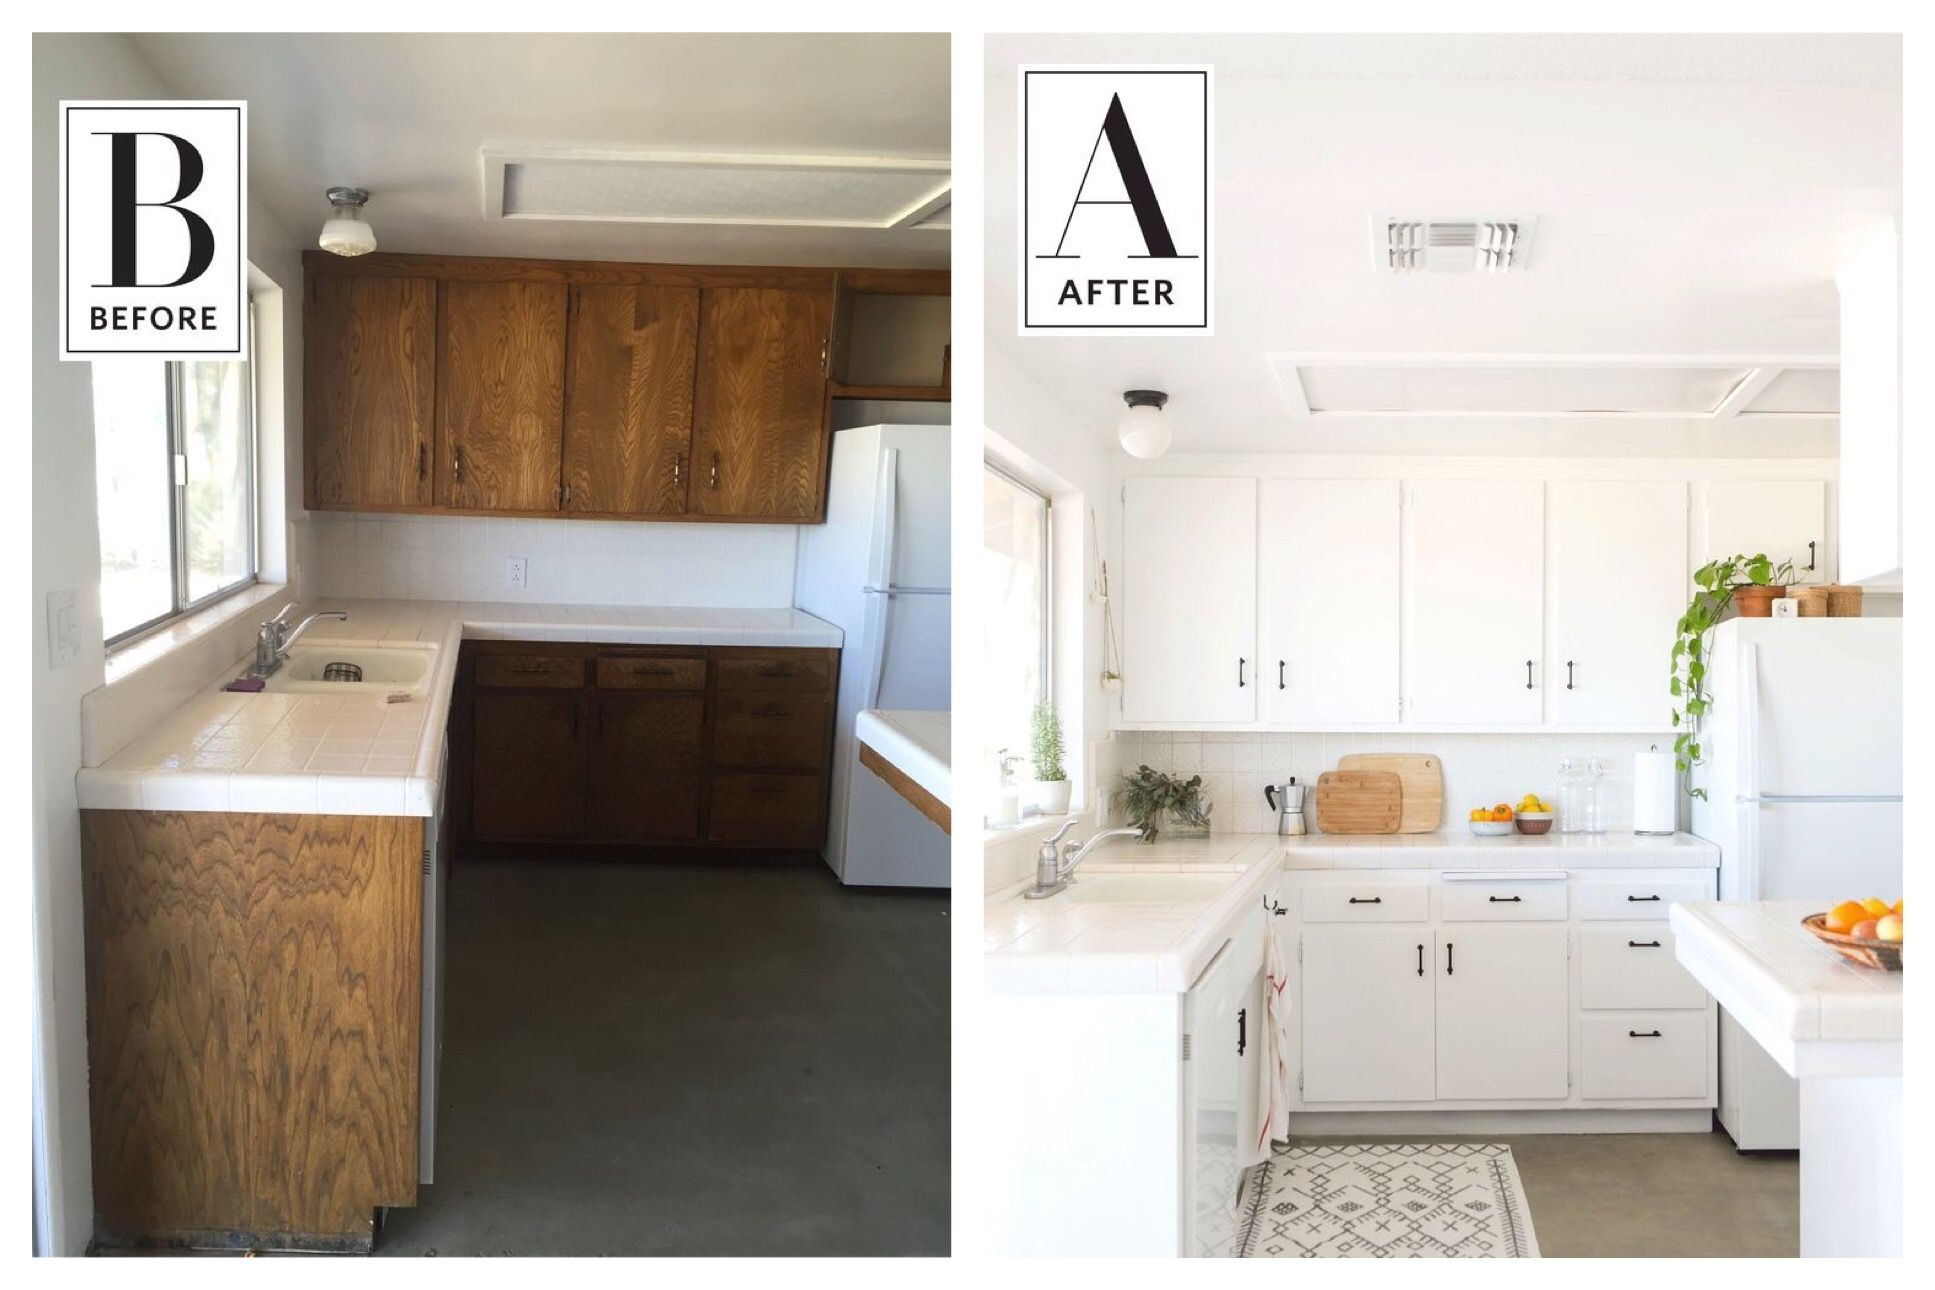 Before and After A Vintage Kitchen in the Desert Gets a Bright Face